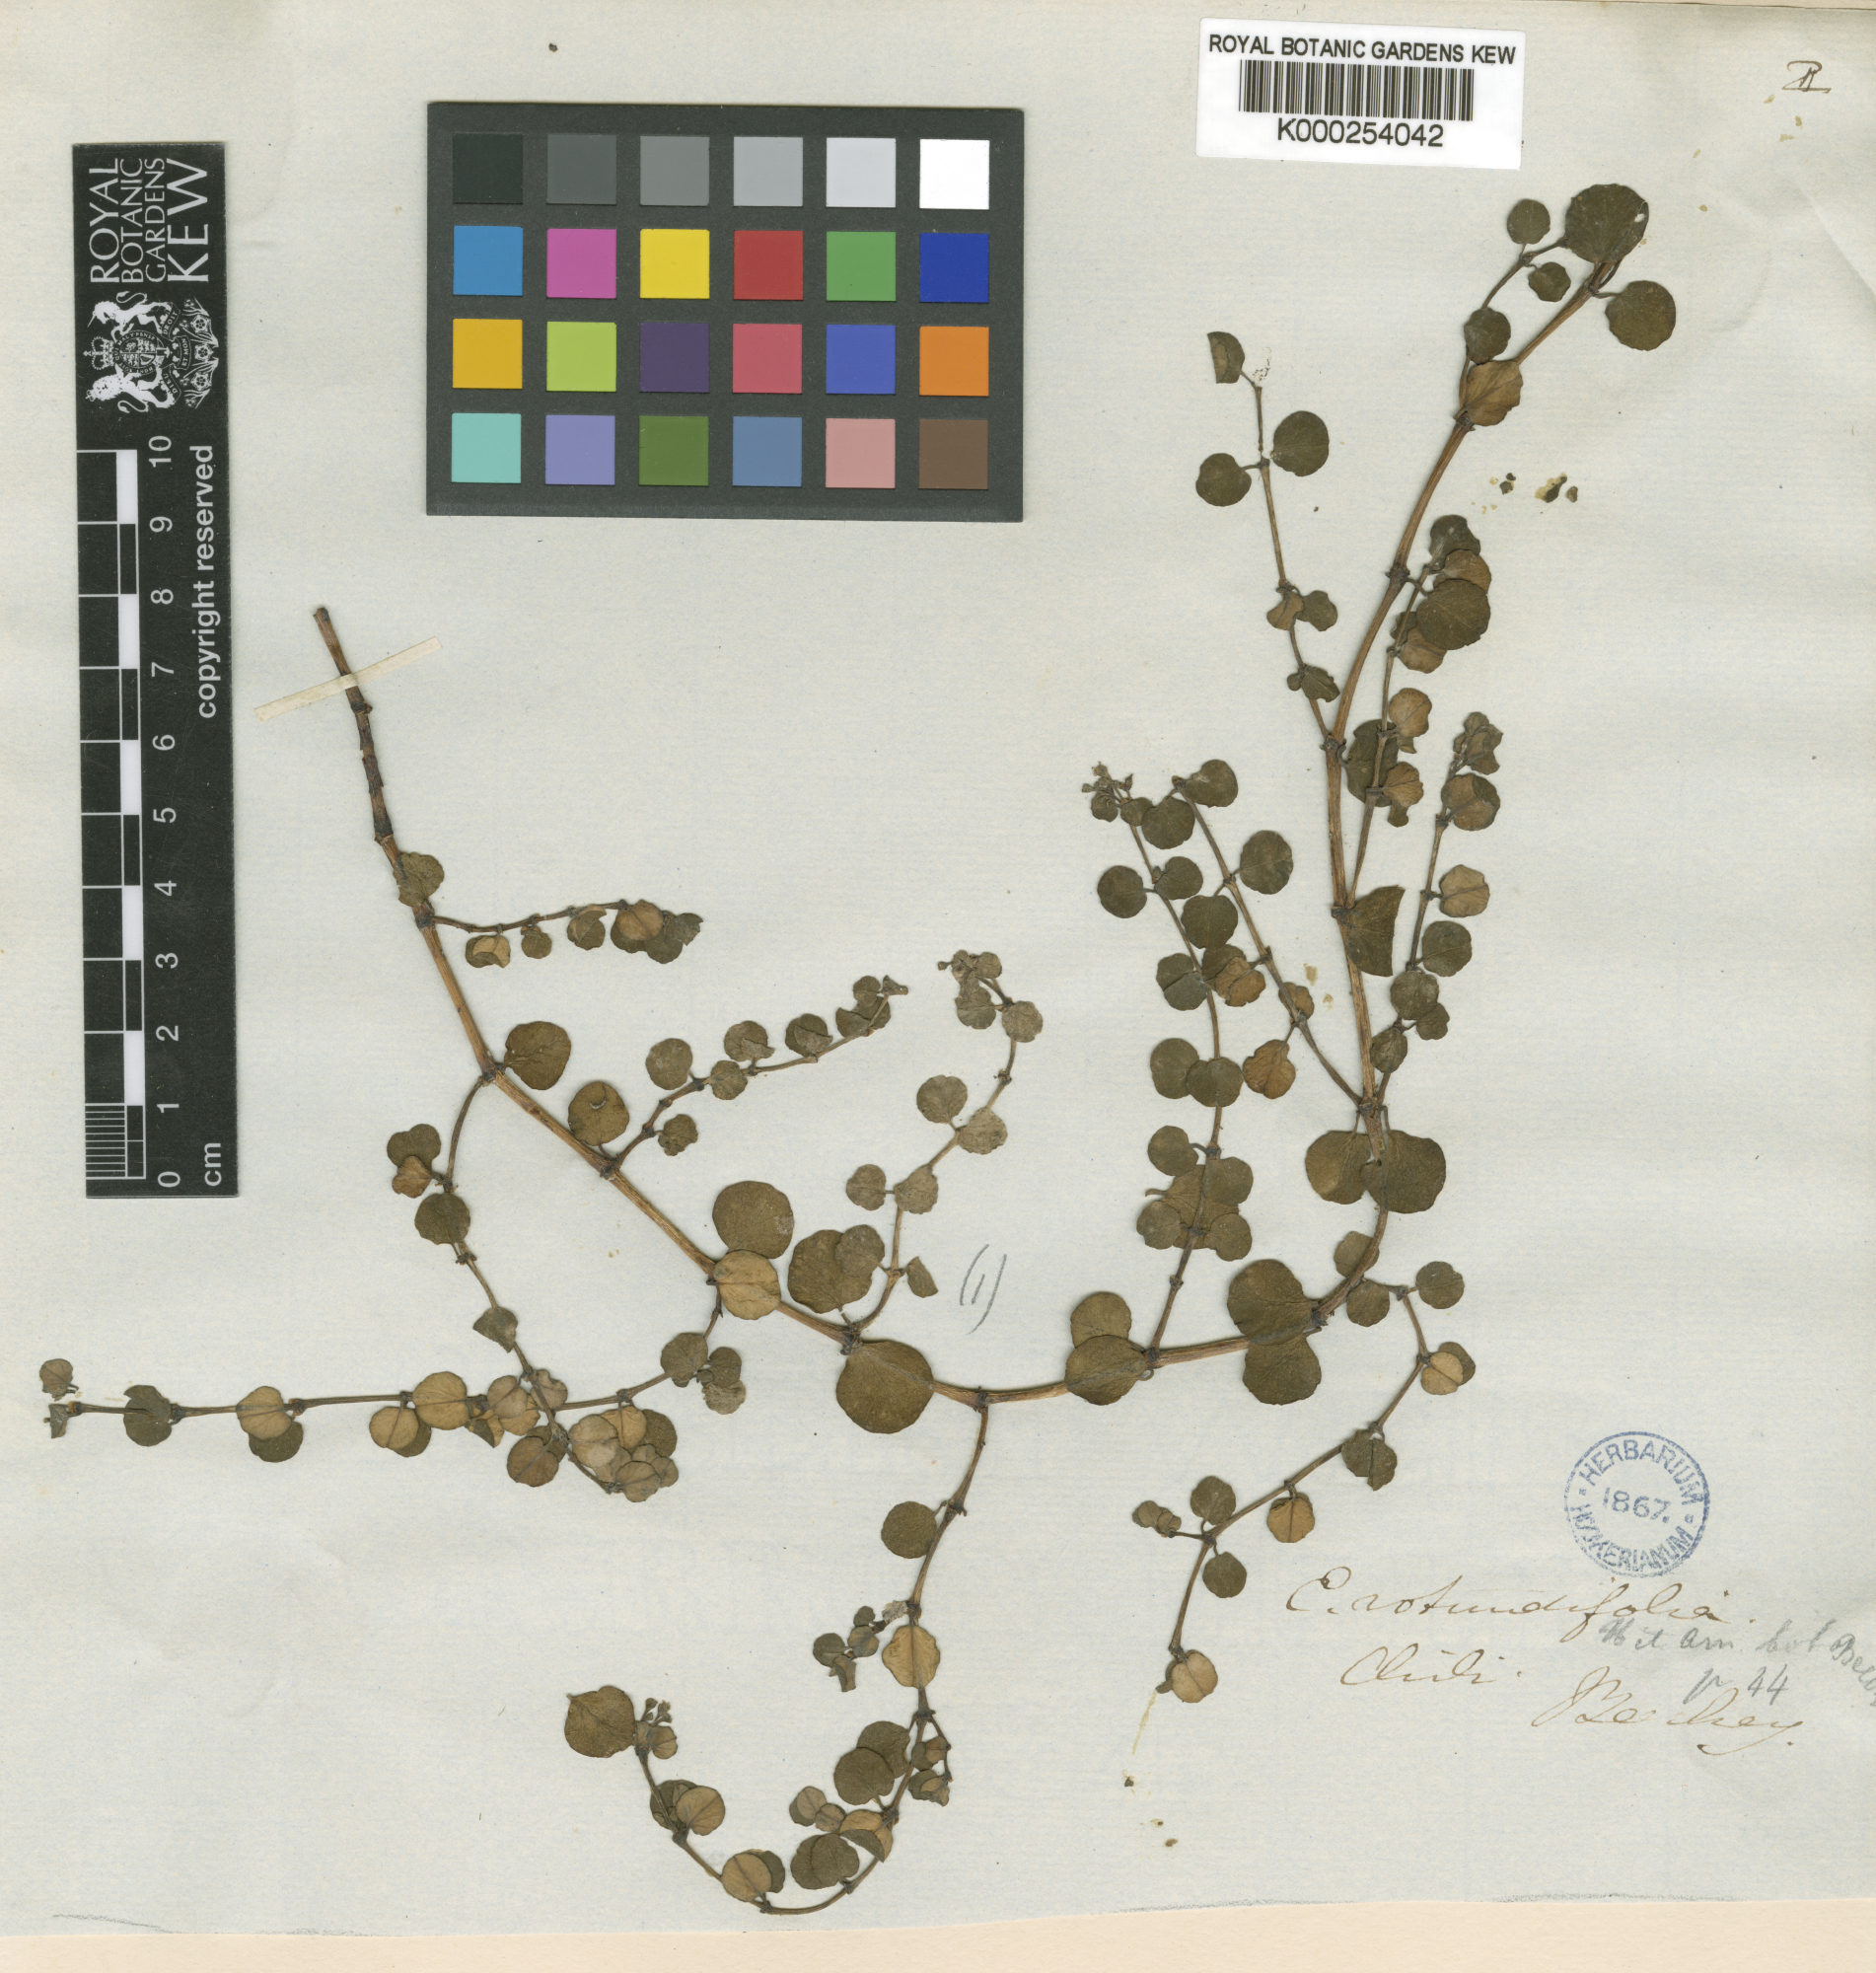 © The Board of Trustees of the Royal Botanic Gardens, Kew. K - Herbarium Catalogue - K000254042  Source: RBGK Herbarium Specimens – Free access<br>